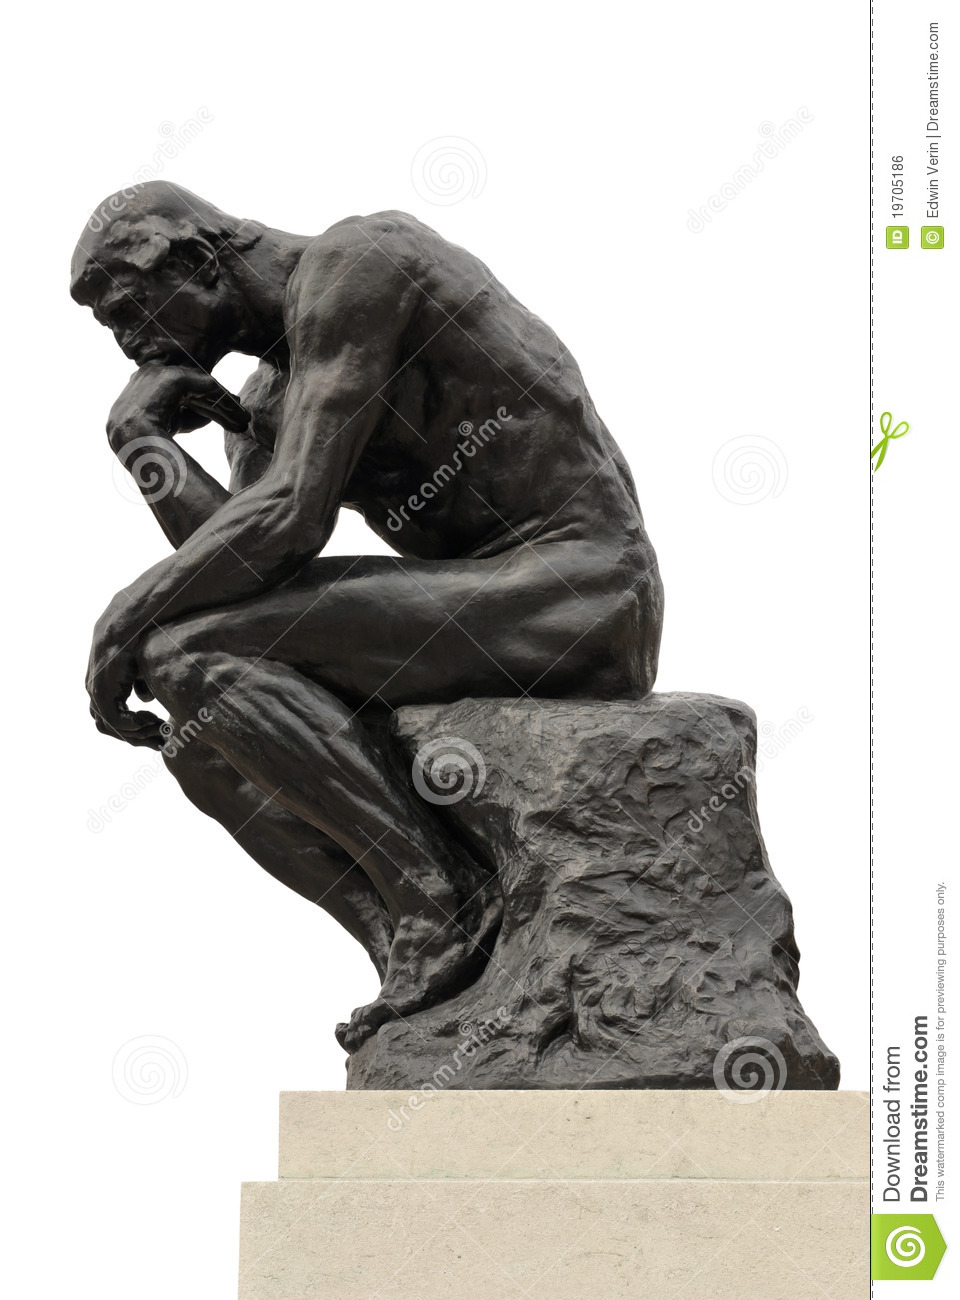 Statue Of The Thinker By Famous French Sculptor Auguste Rodin.